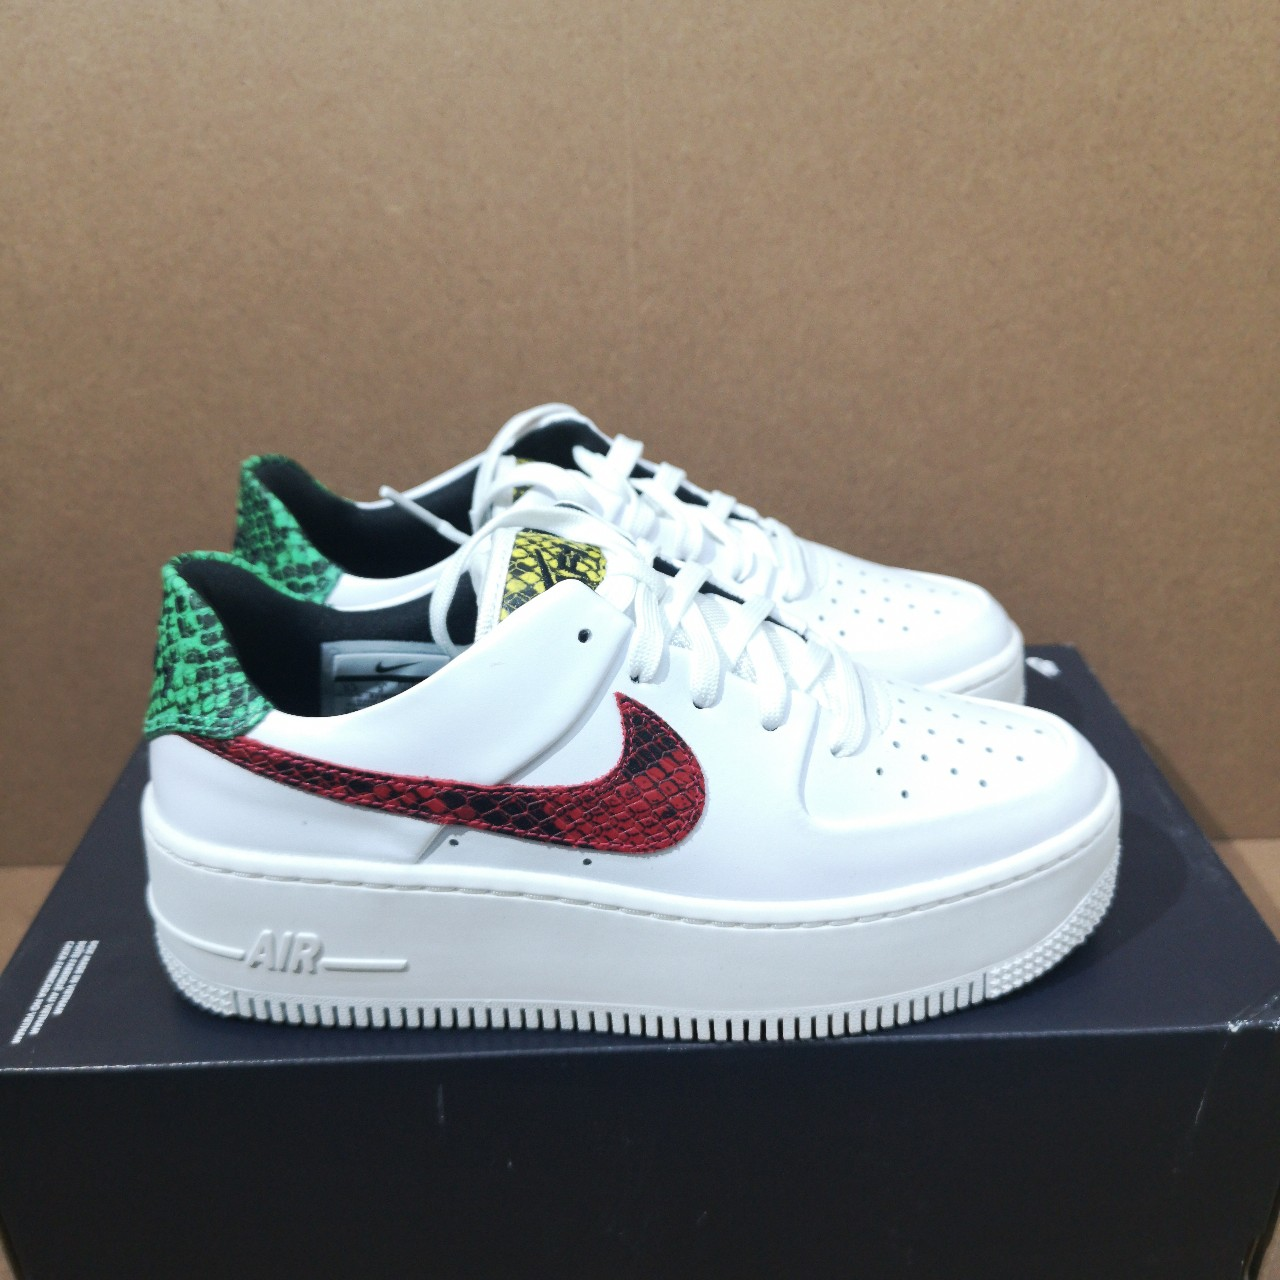 Nike Air Force 1 Sage 'Snake' | BV1979 100 | Sneakerjagers